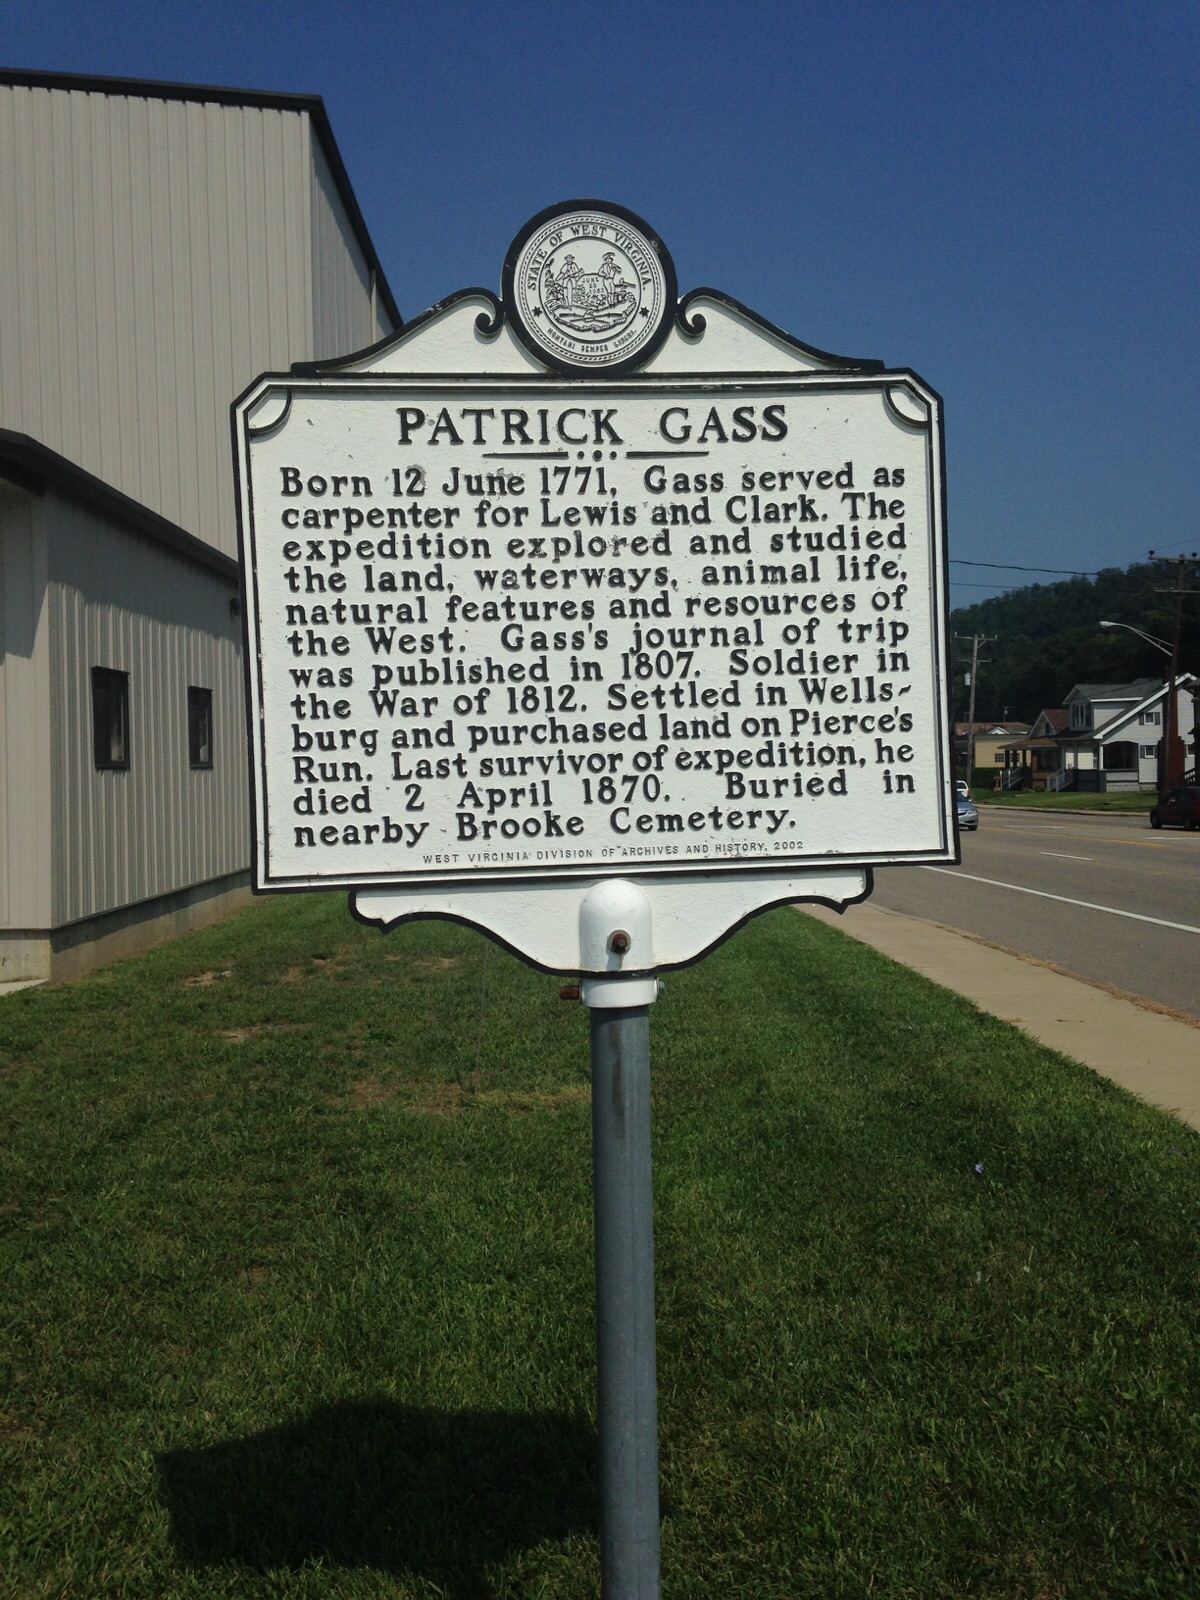 Historical Marker located at 22nd & Commerce Wellsburg, WV 26070.